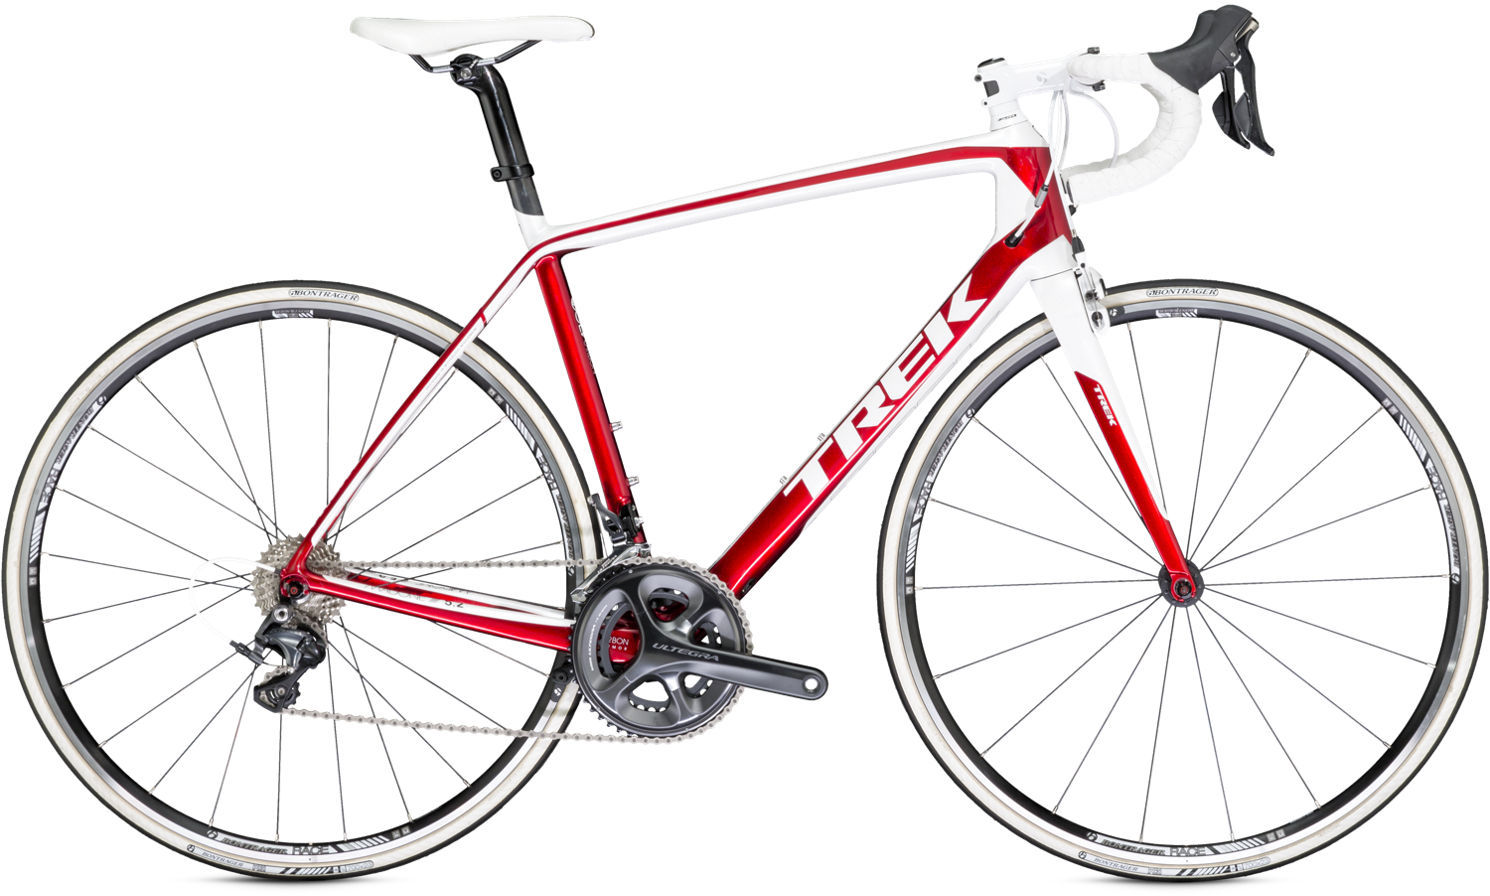 Trek Madone 5 2 2014 2015 Review The Bike List